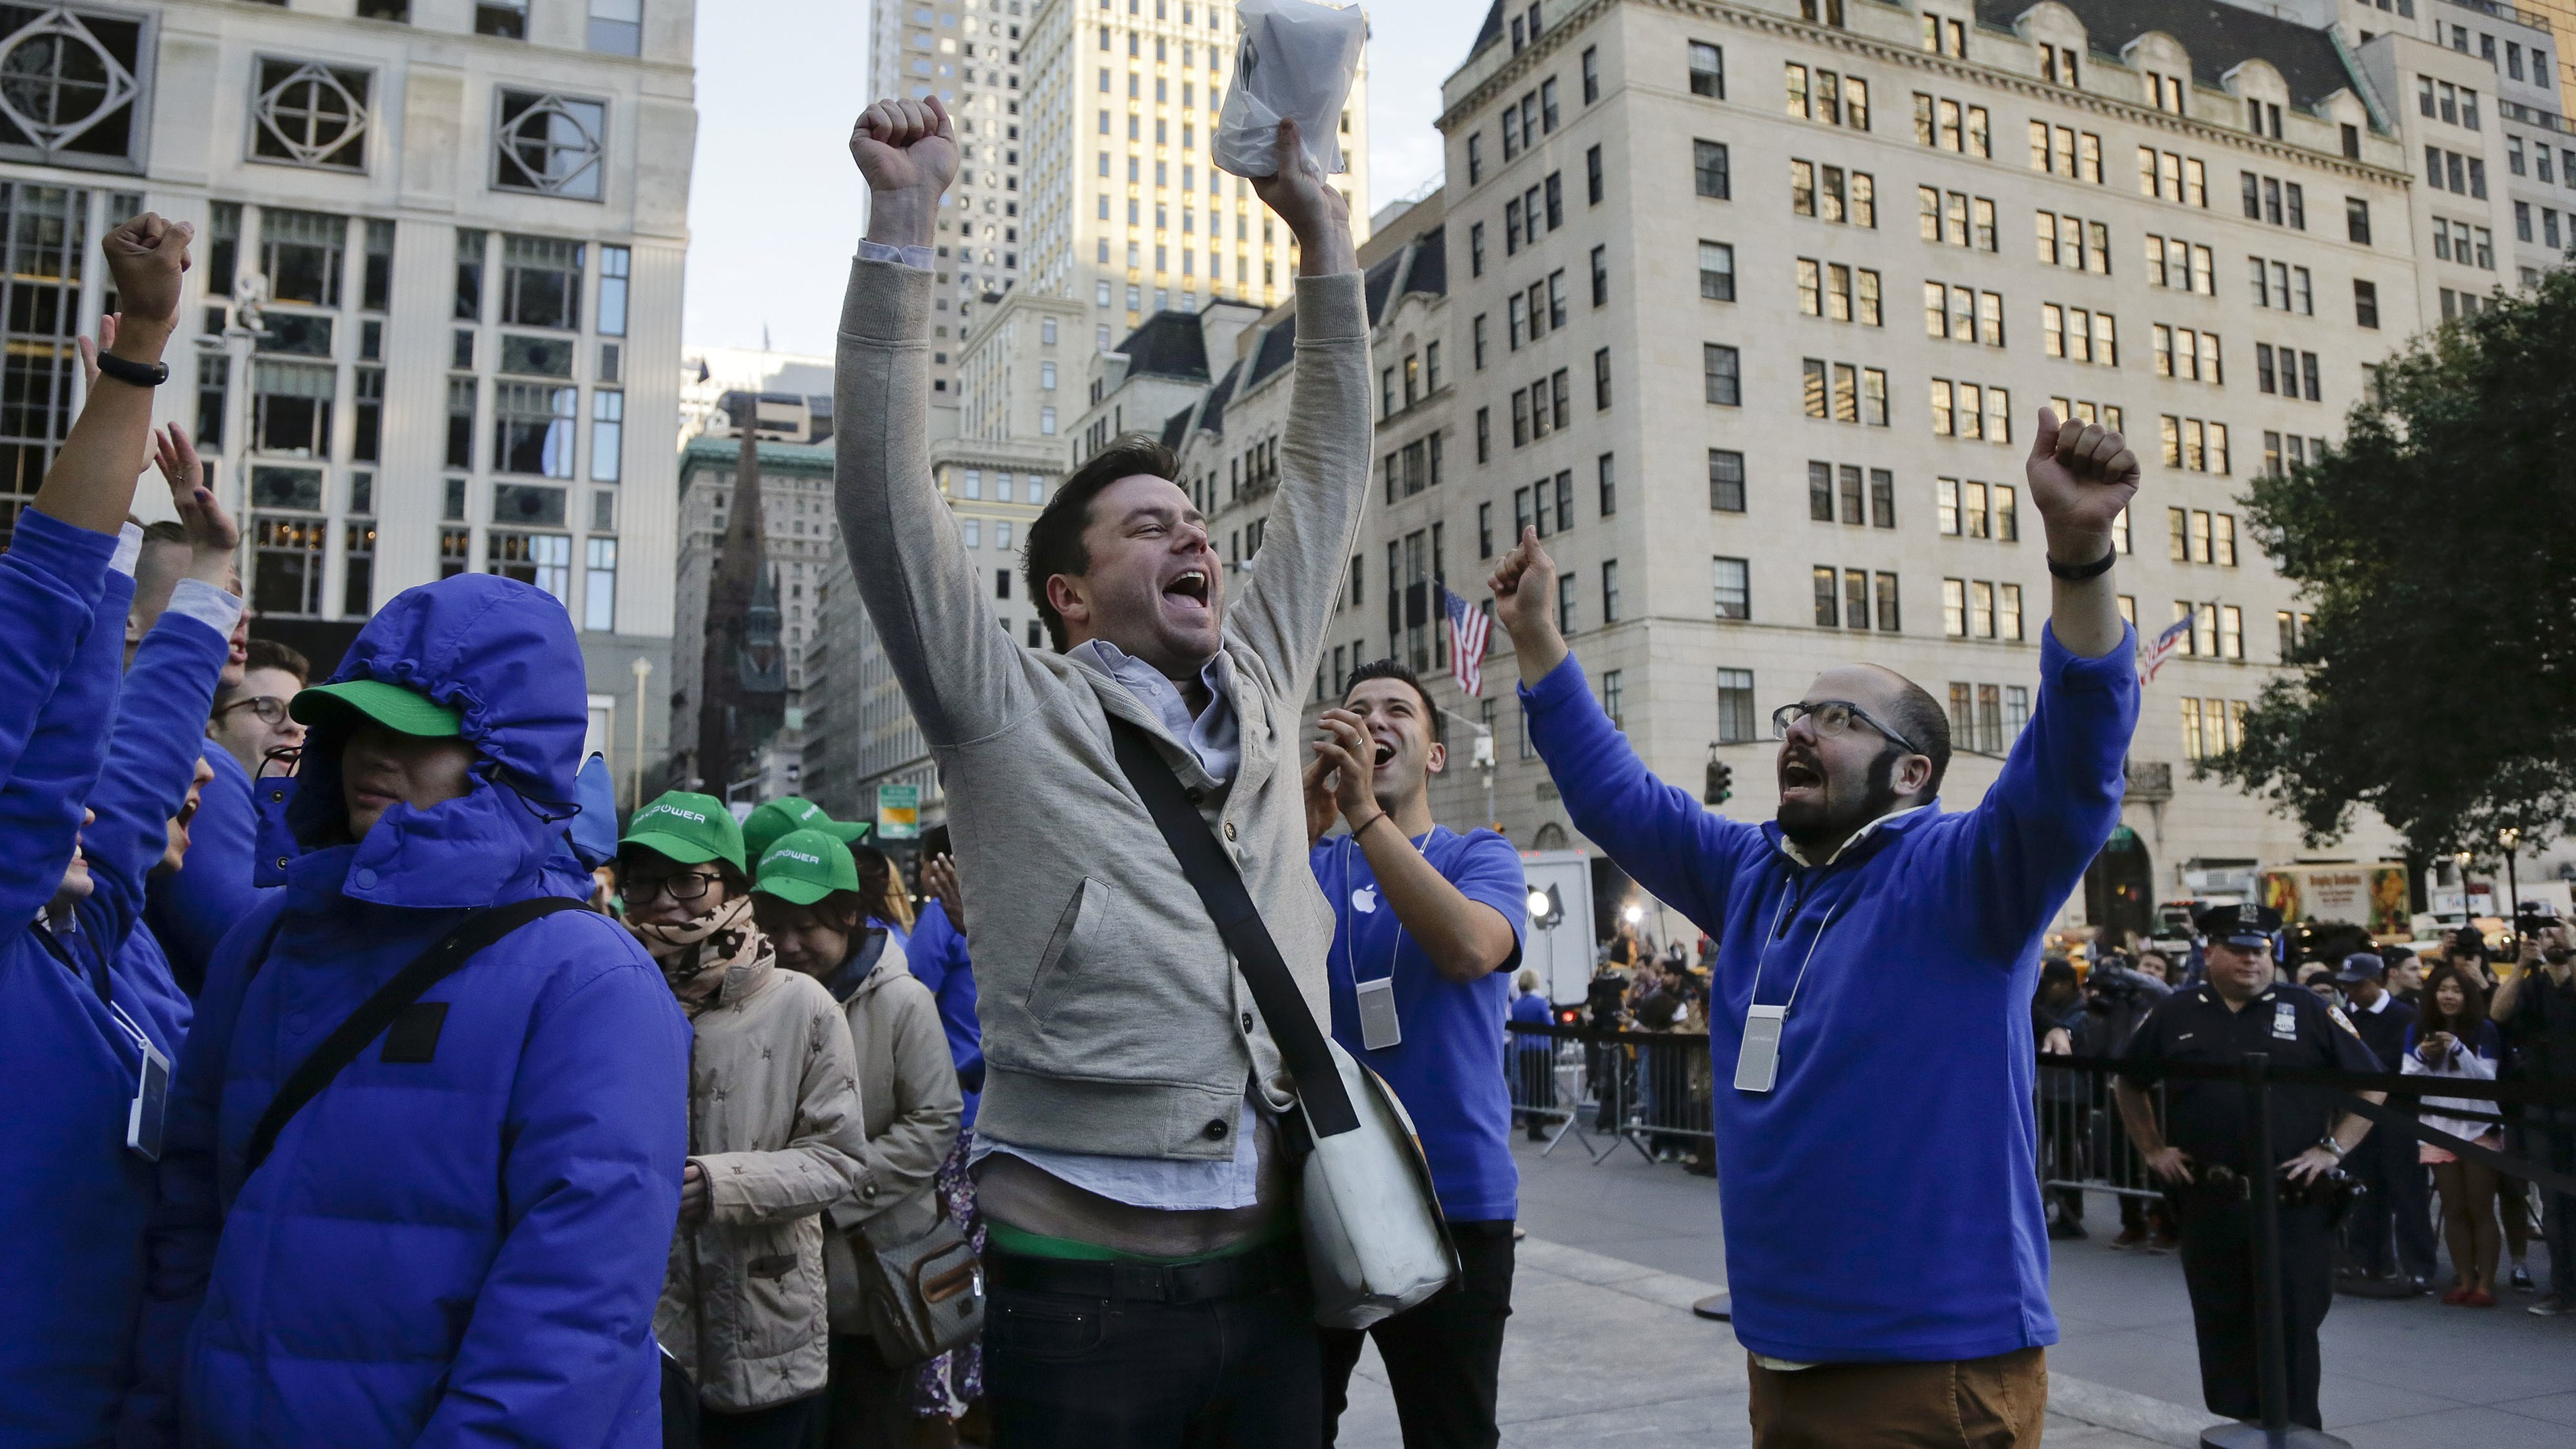 Andreas Gibson celebrates as he exits the Apple store after being the first to purchase an iPhone 6 Plus, Friday, Sept. 19, 2014, in New York. The highly anticipated iPhone 6 and iPhone 6 Plus are being released in stores today. (AP Photo/Julie Jacobson)